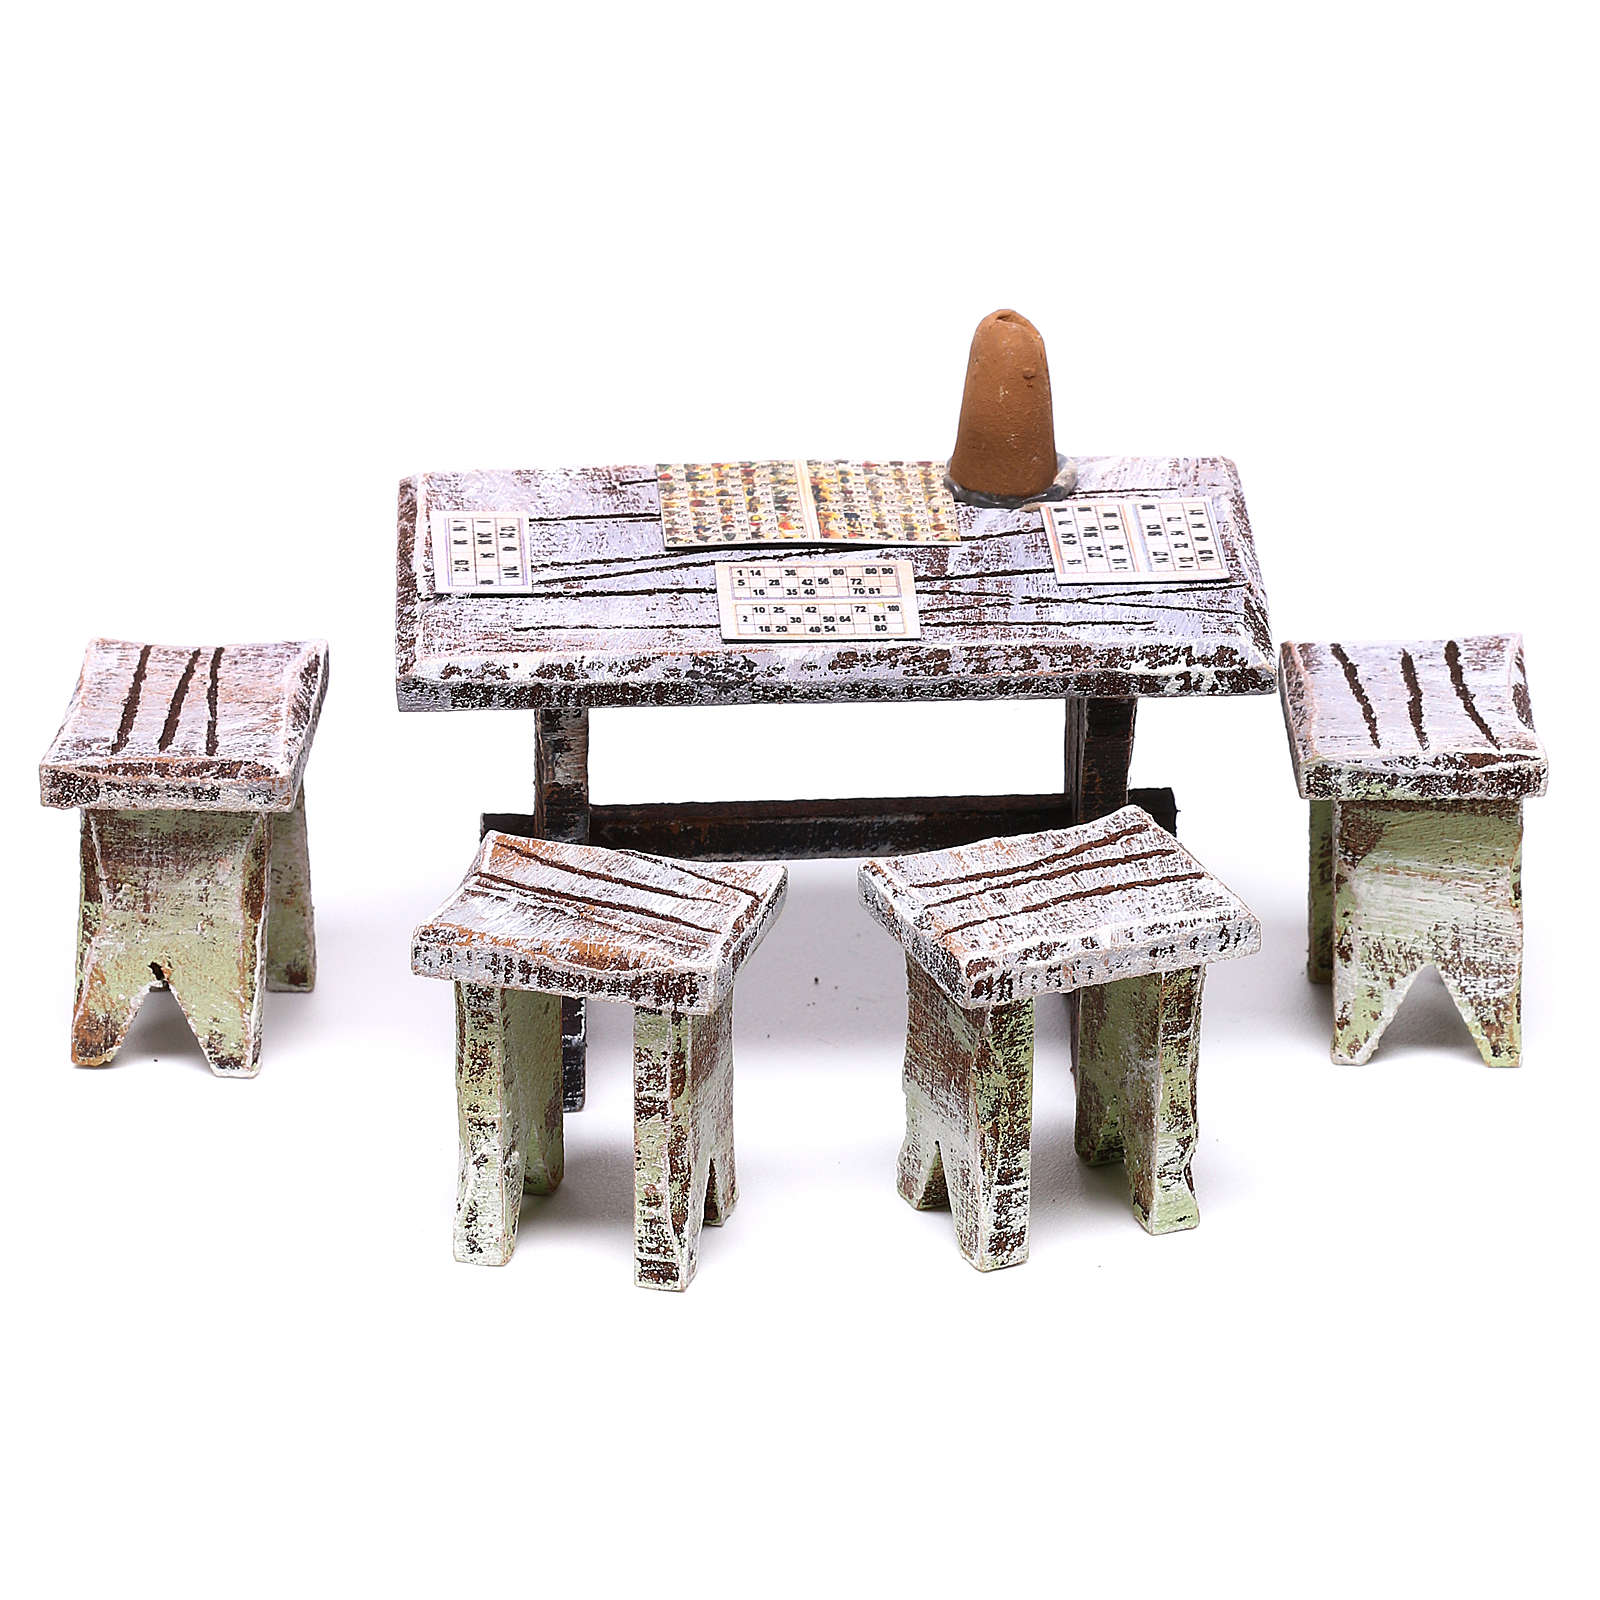 Bingo table and stools of 5x5x5 cm for Nativity scene of 10 cm 4